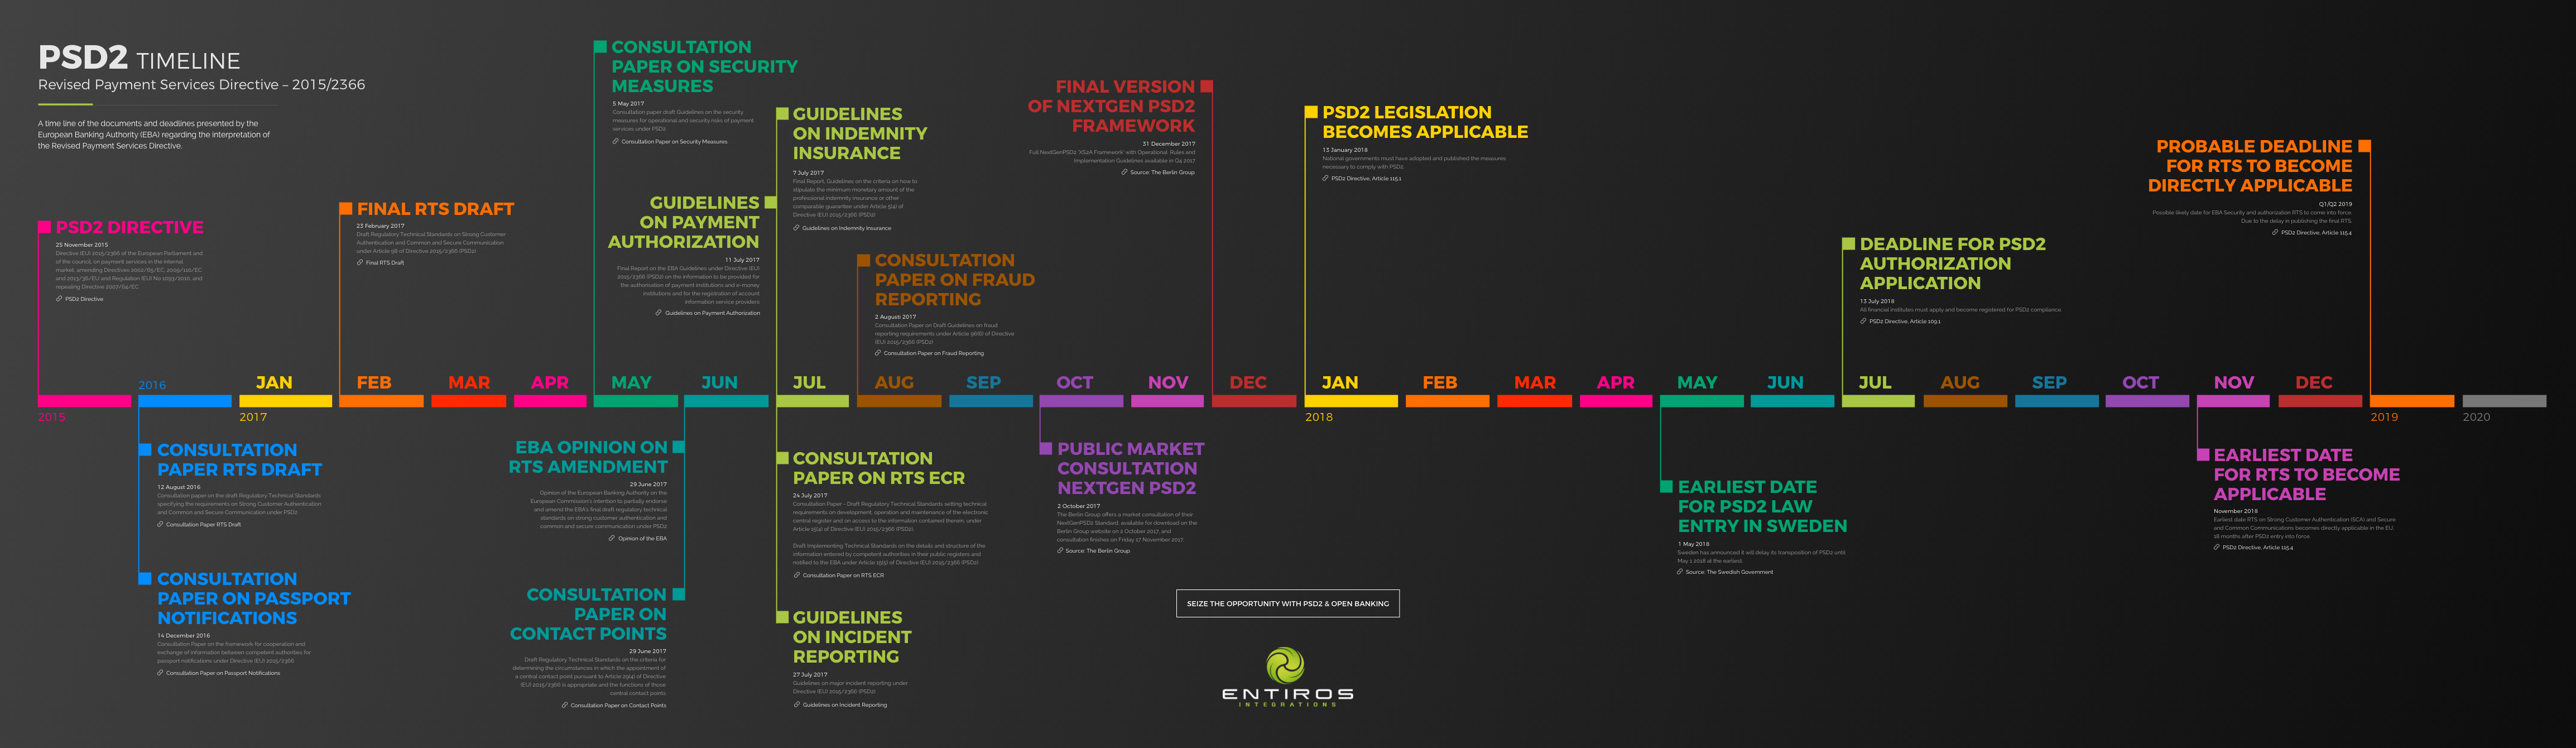 PSD2 Timeline Infographic